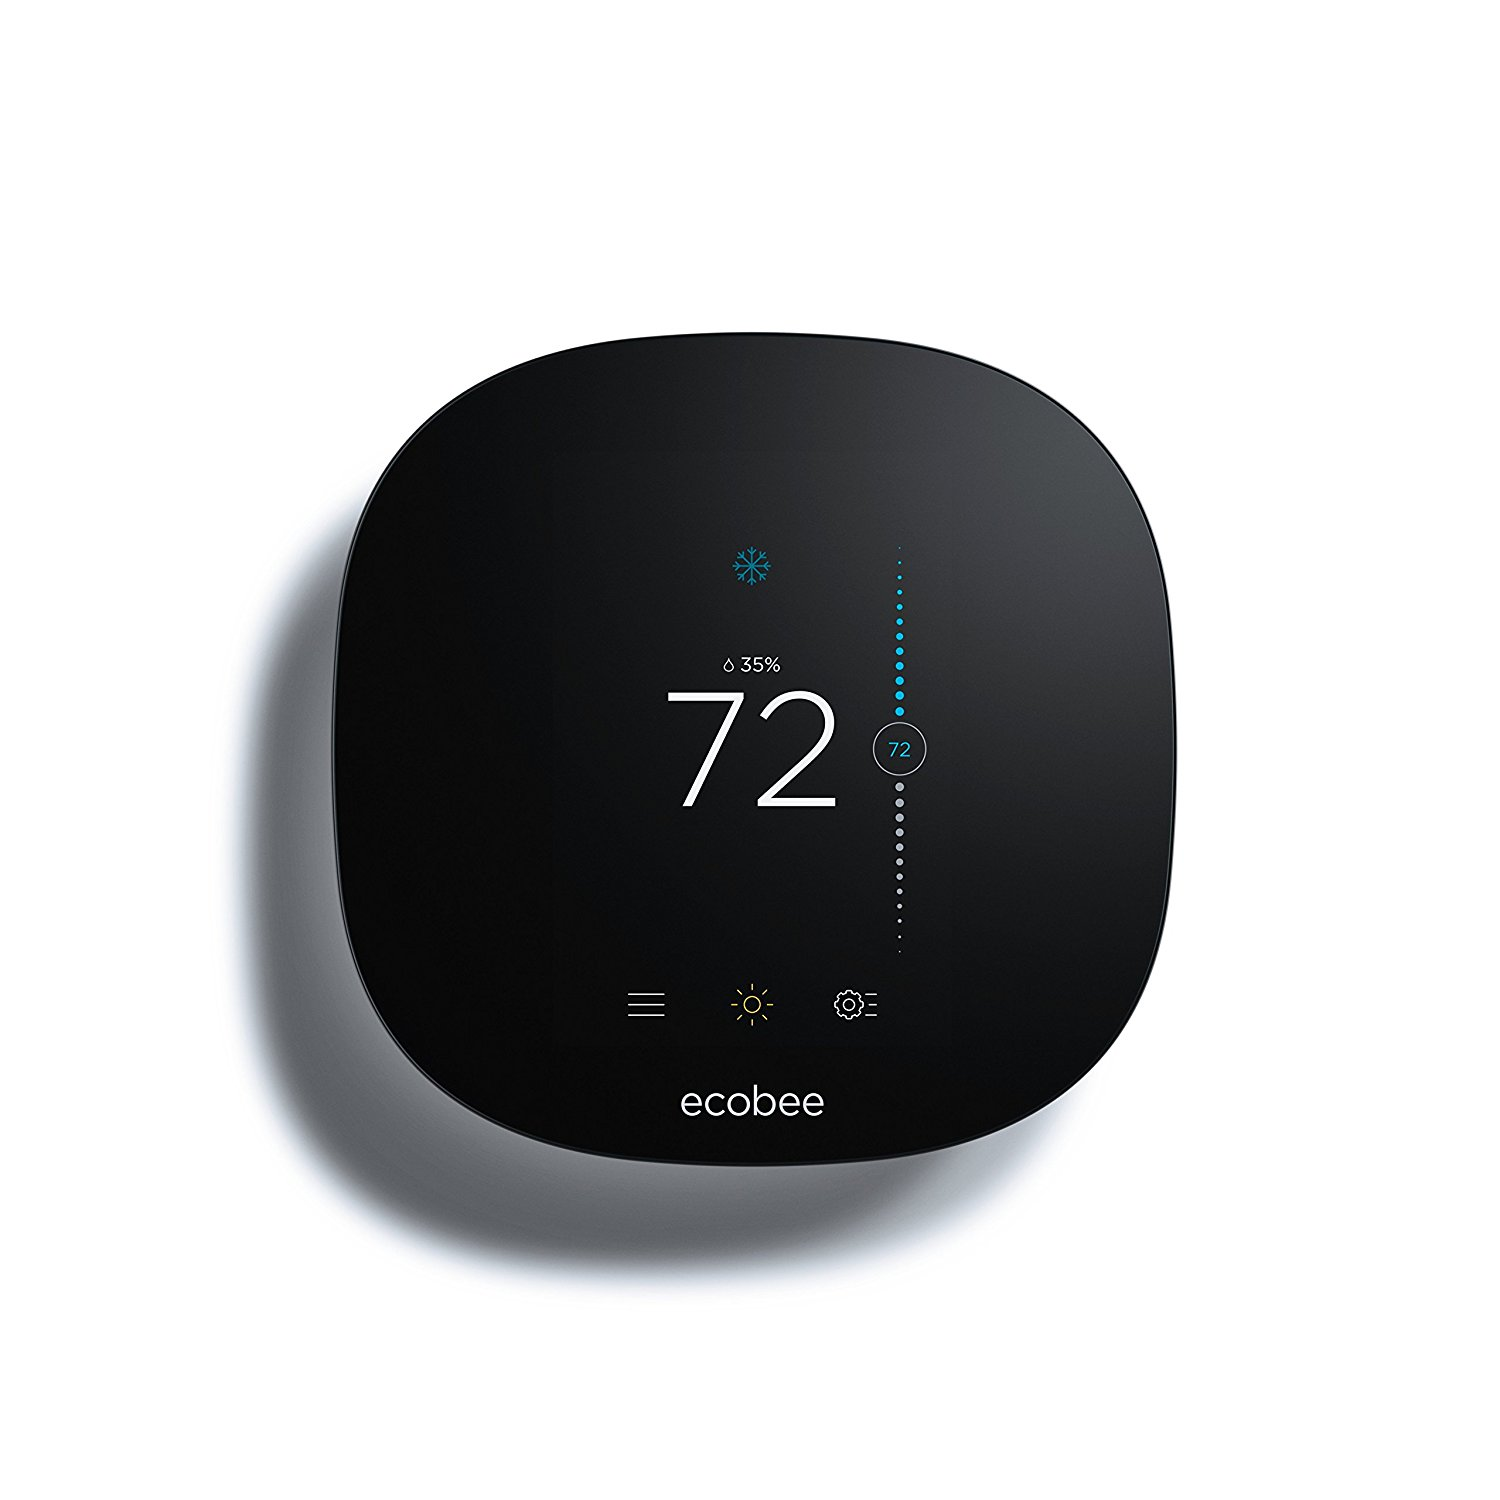 Thermostat - Smartphone controlled